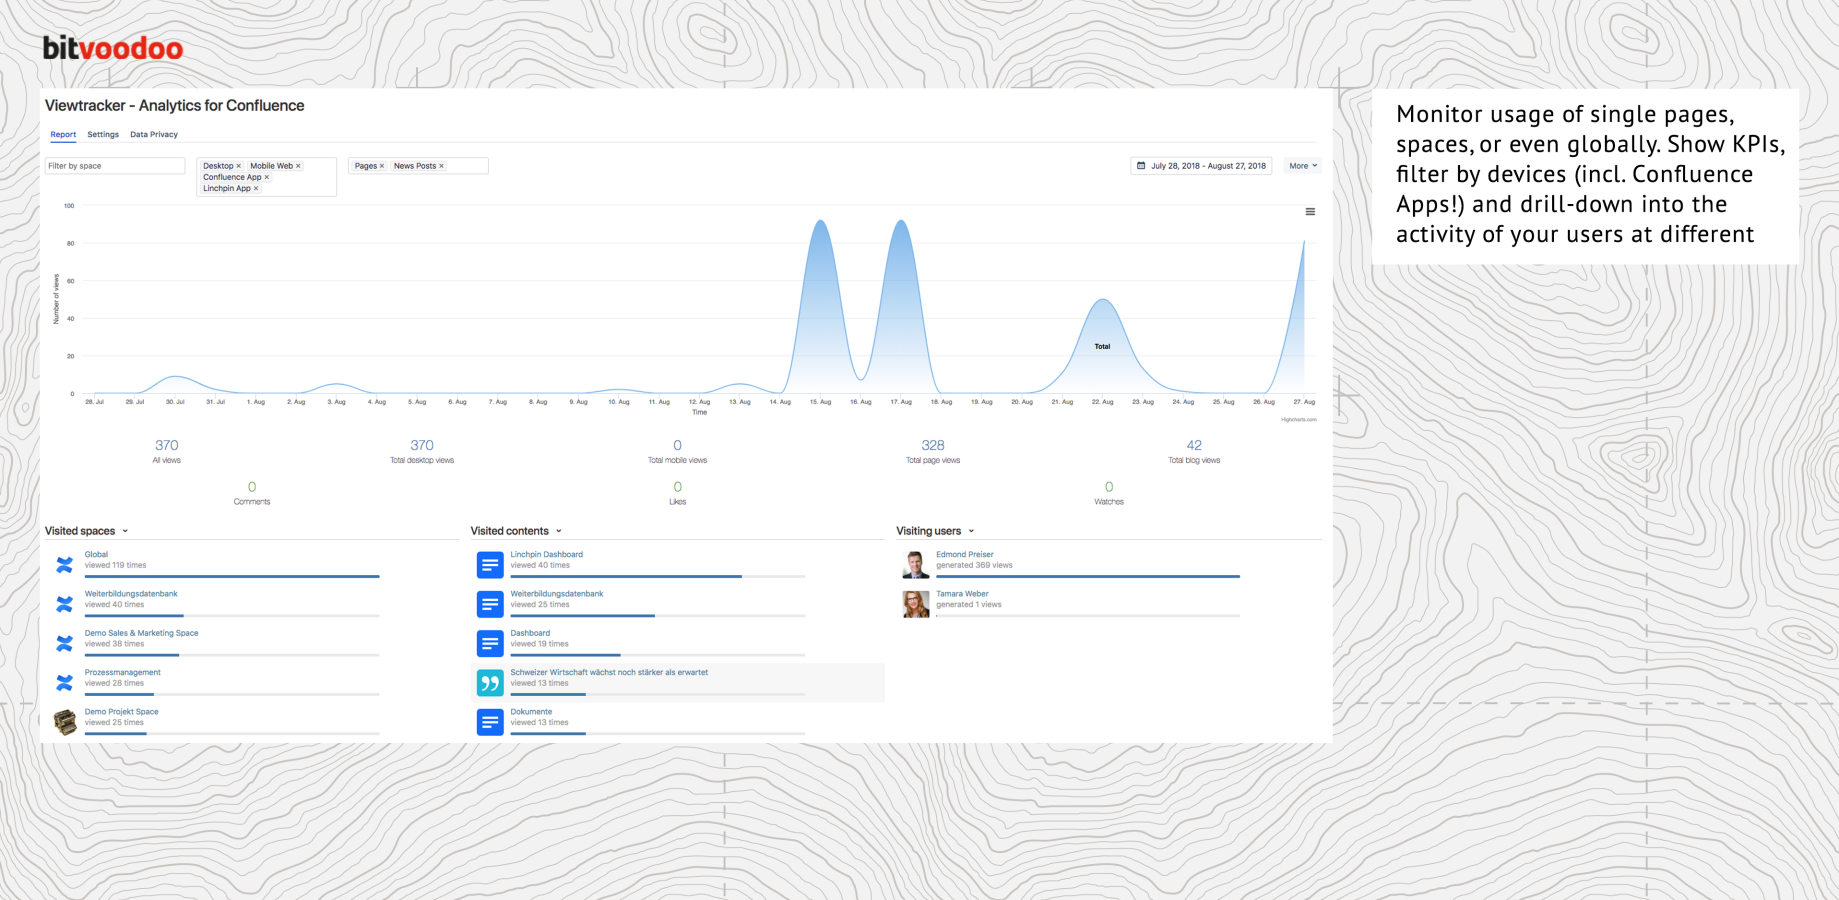 Viewtracker - Analytics for Confluence 3